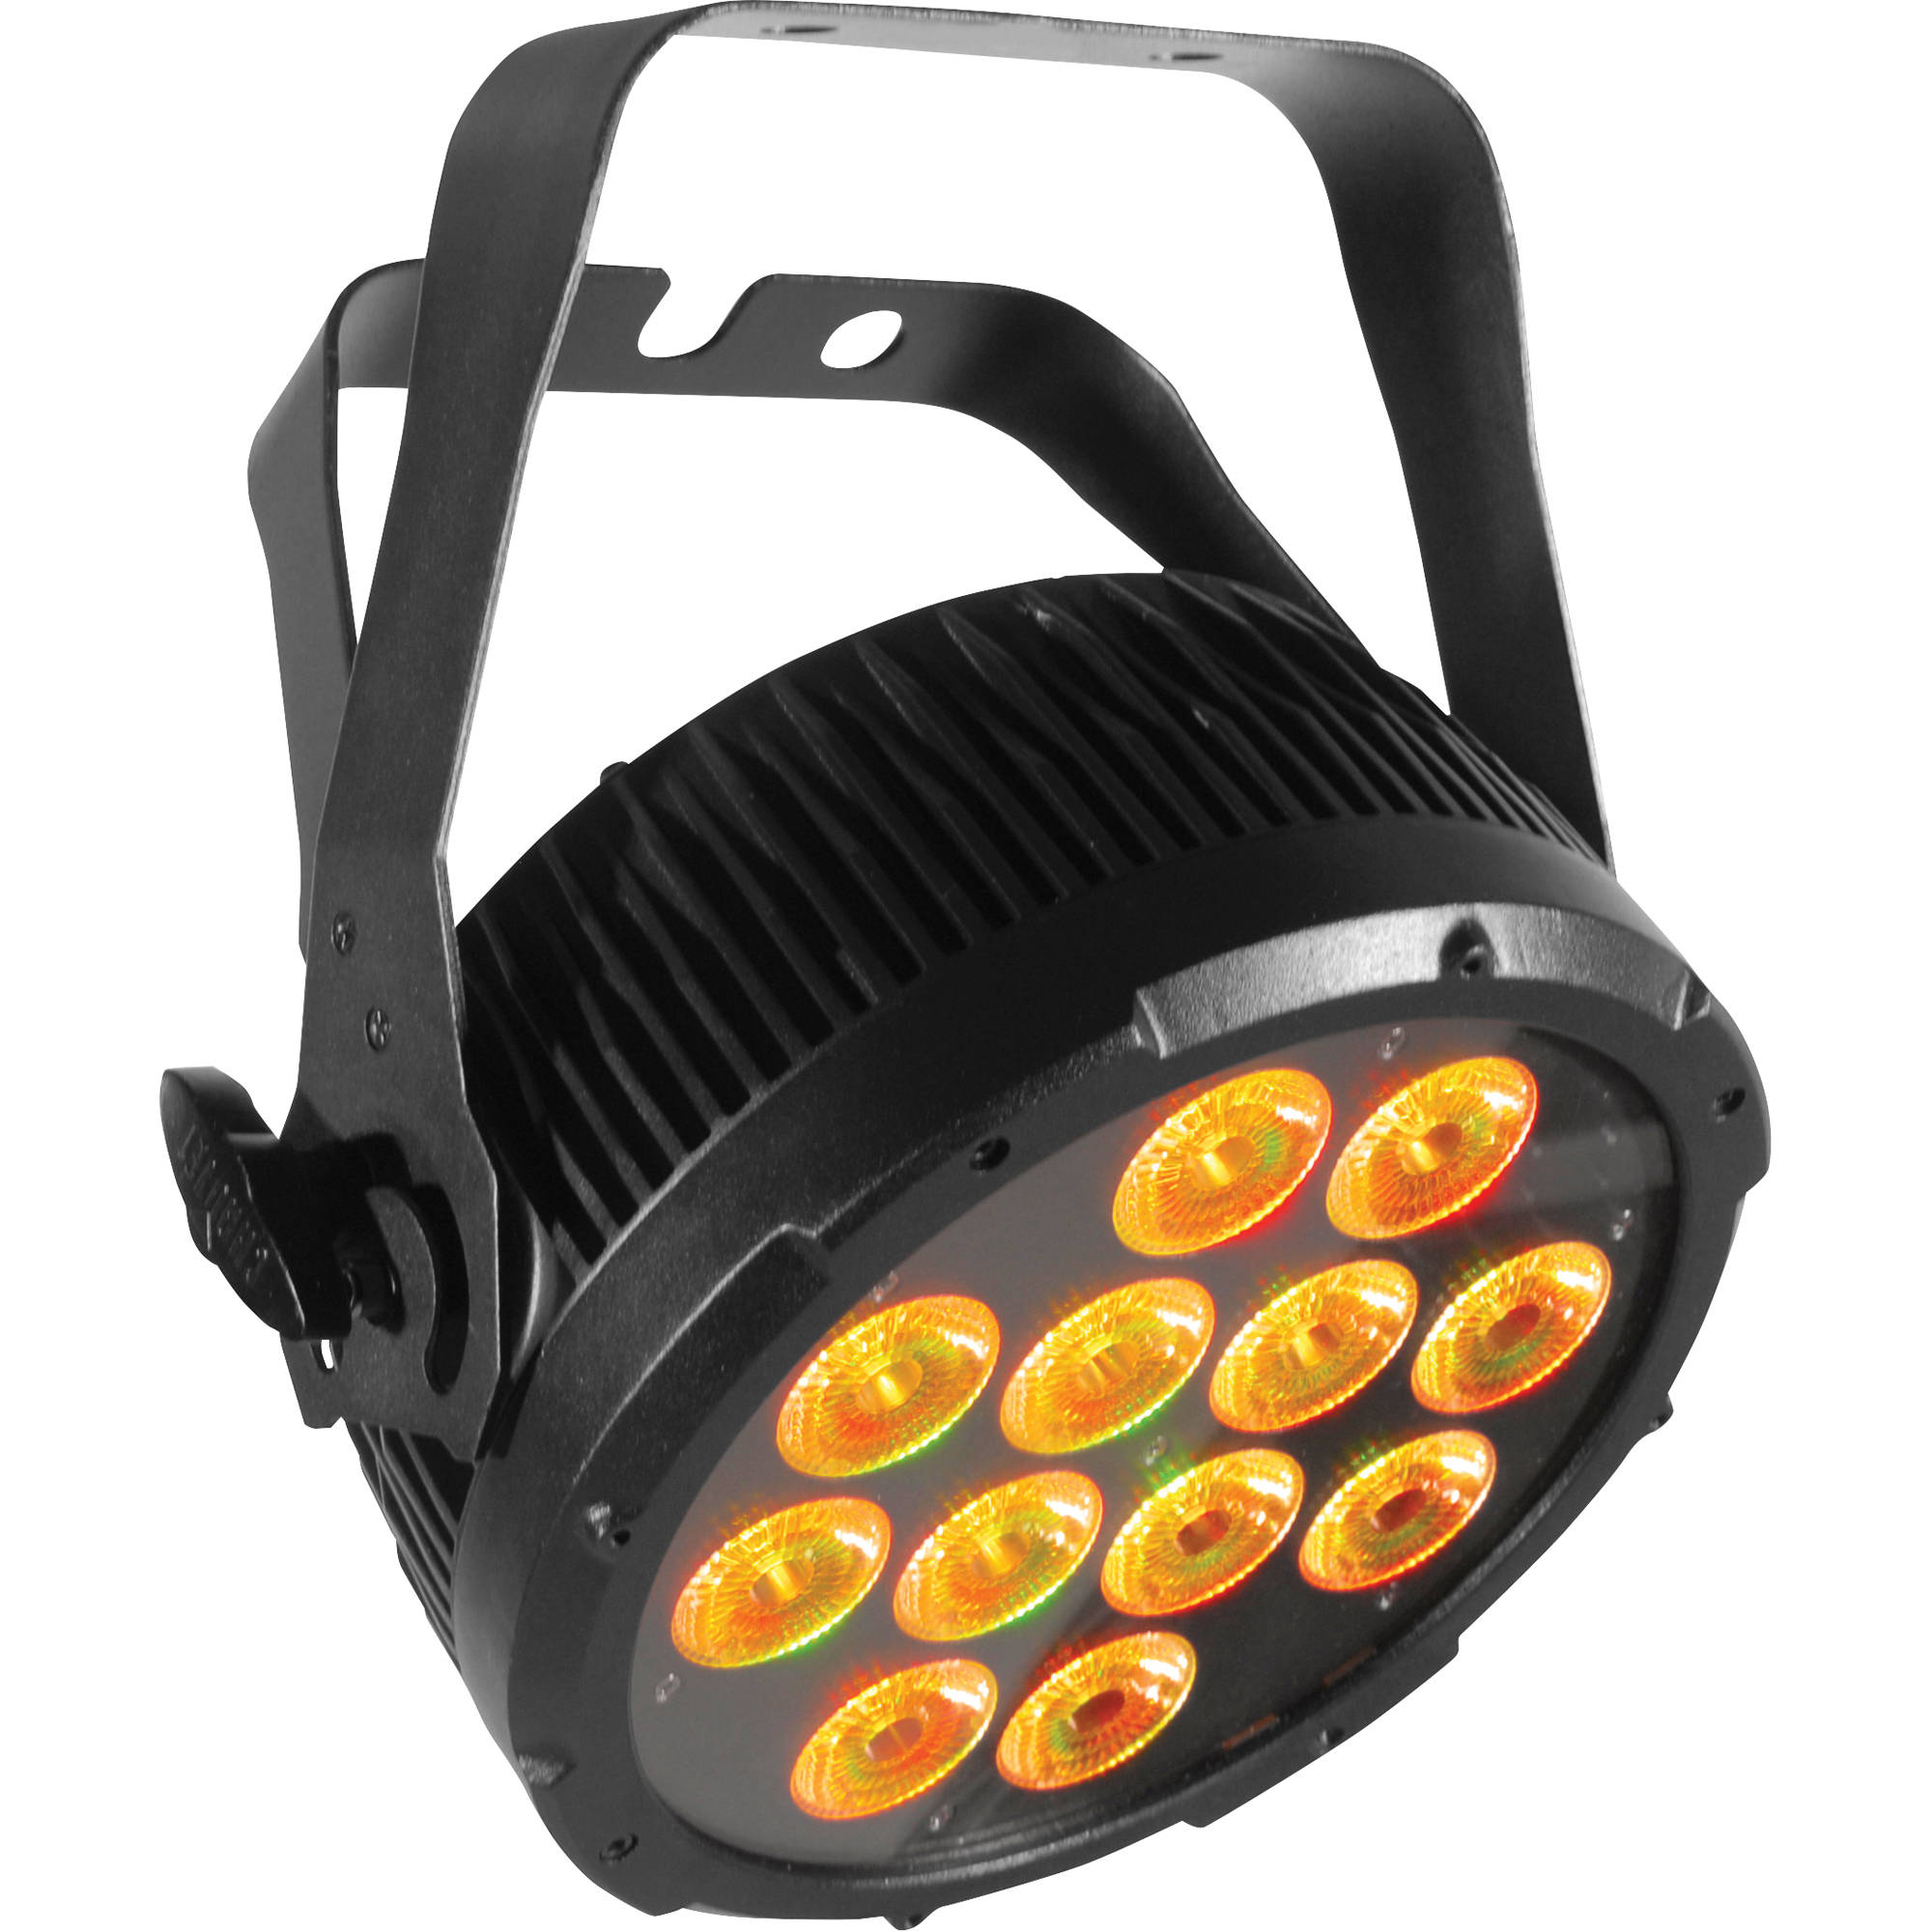 djdeals par lighting hex chauvet pro product com colordash